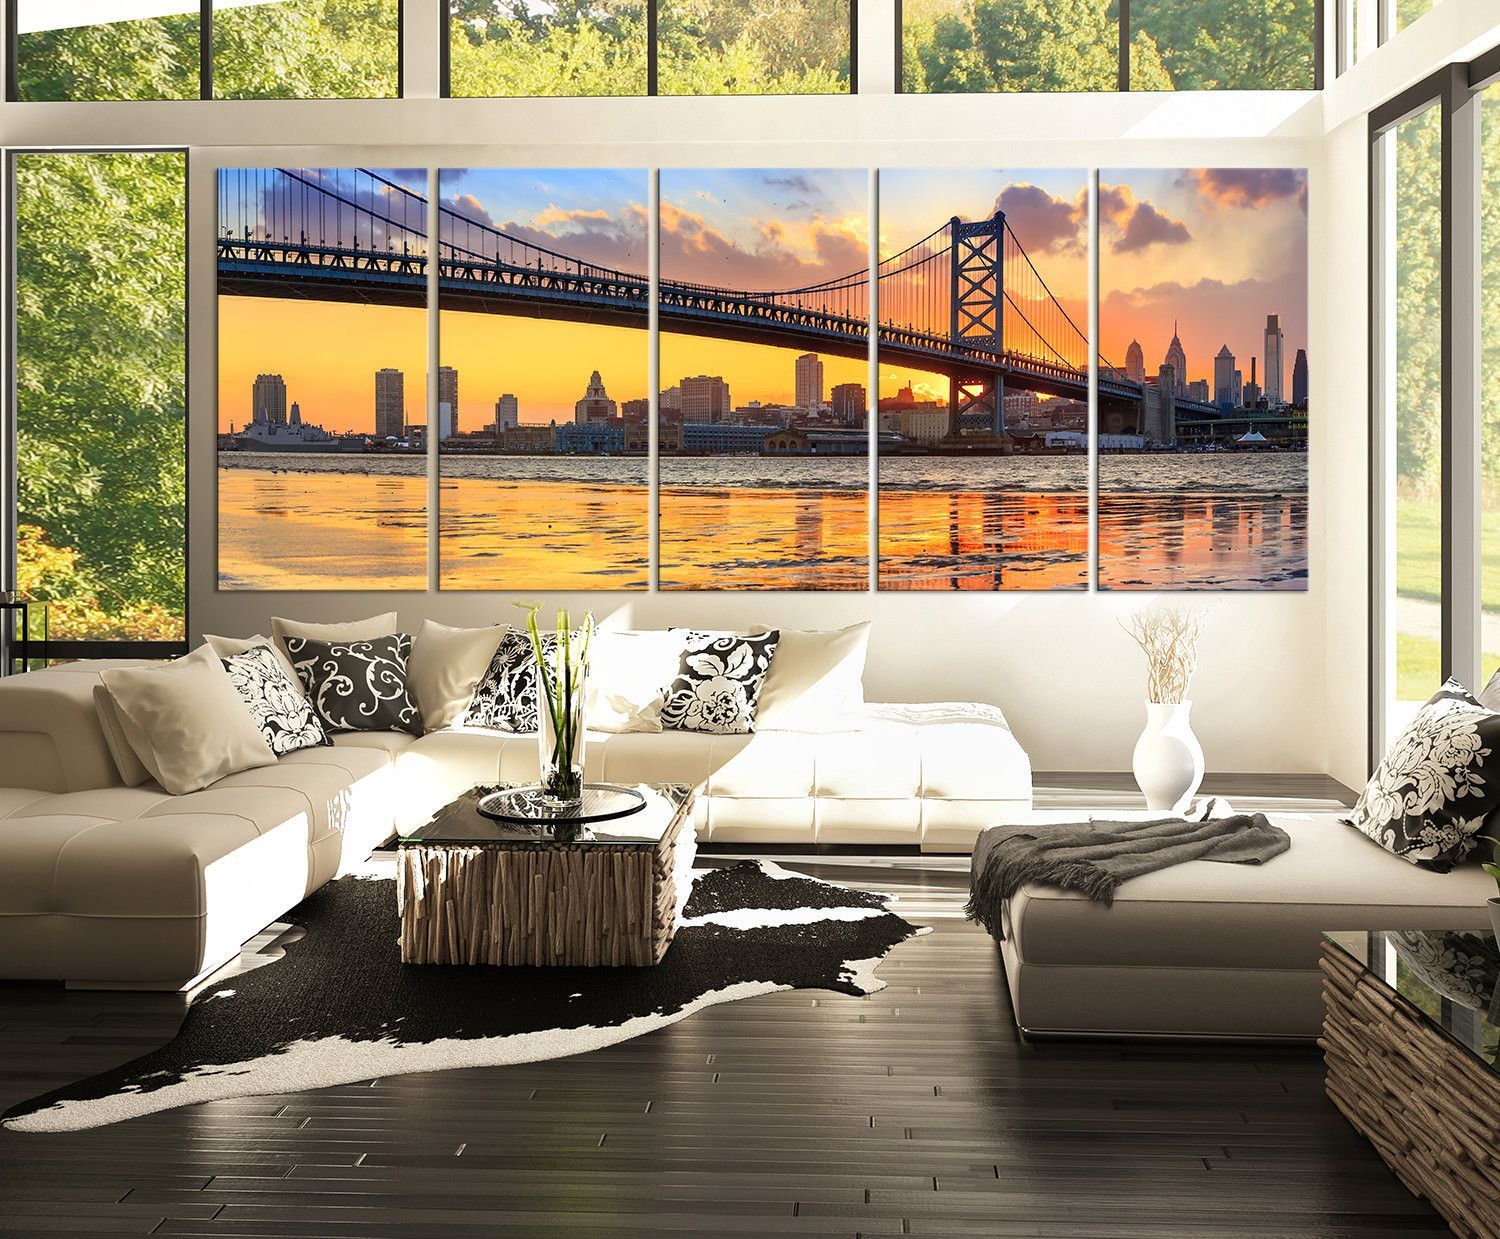 Extra Large Wall Art Canvas Print Ben Franklin Bridge And Philadelphia Skyline By Night Large Canvas Wall Art Extra Large Wall Art Philadelphia Canvas Art